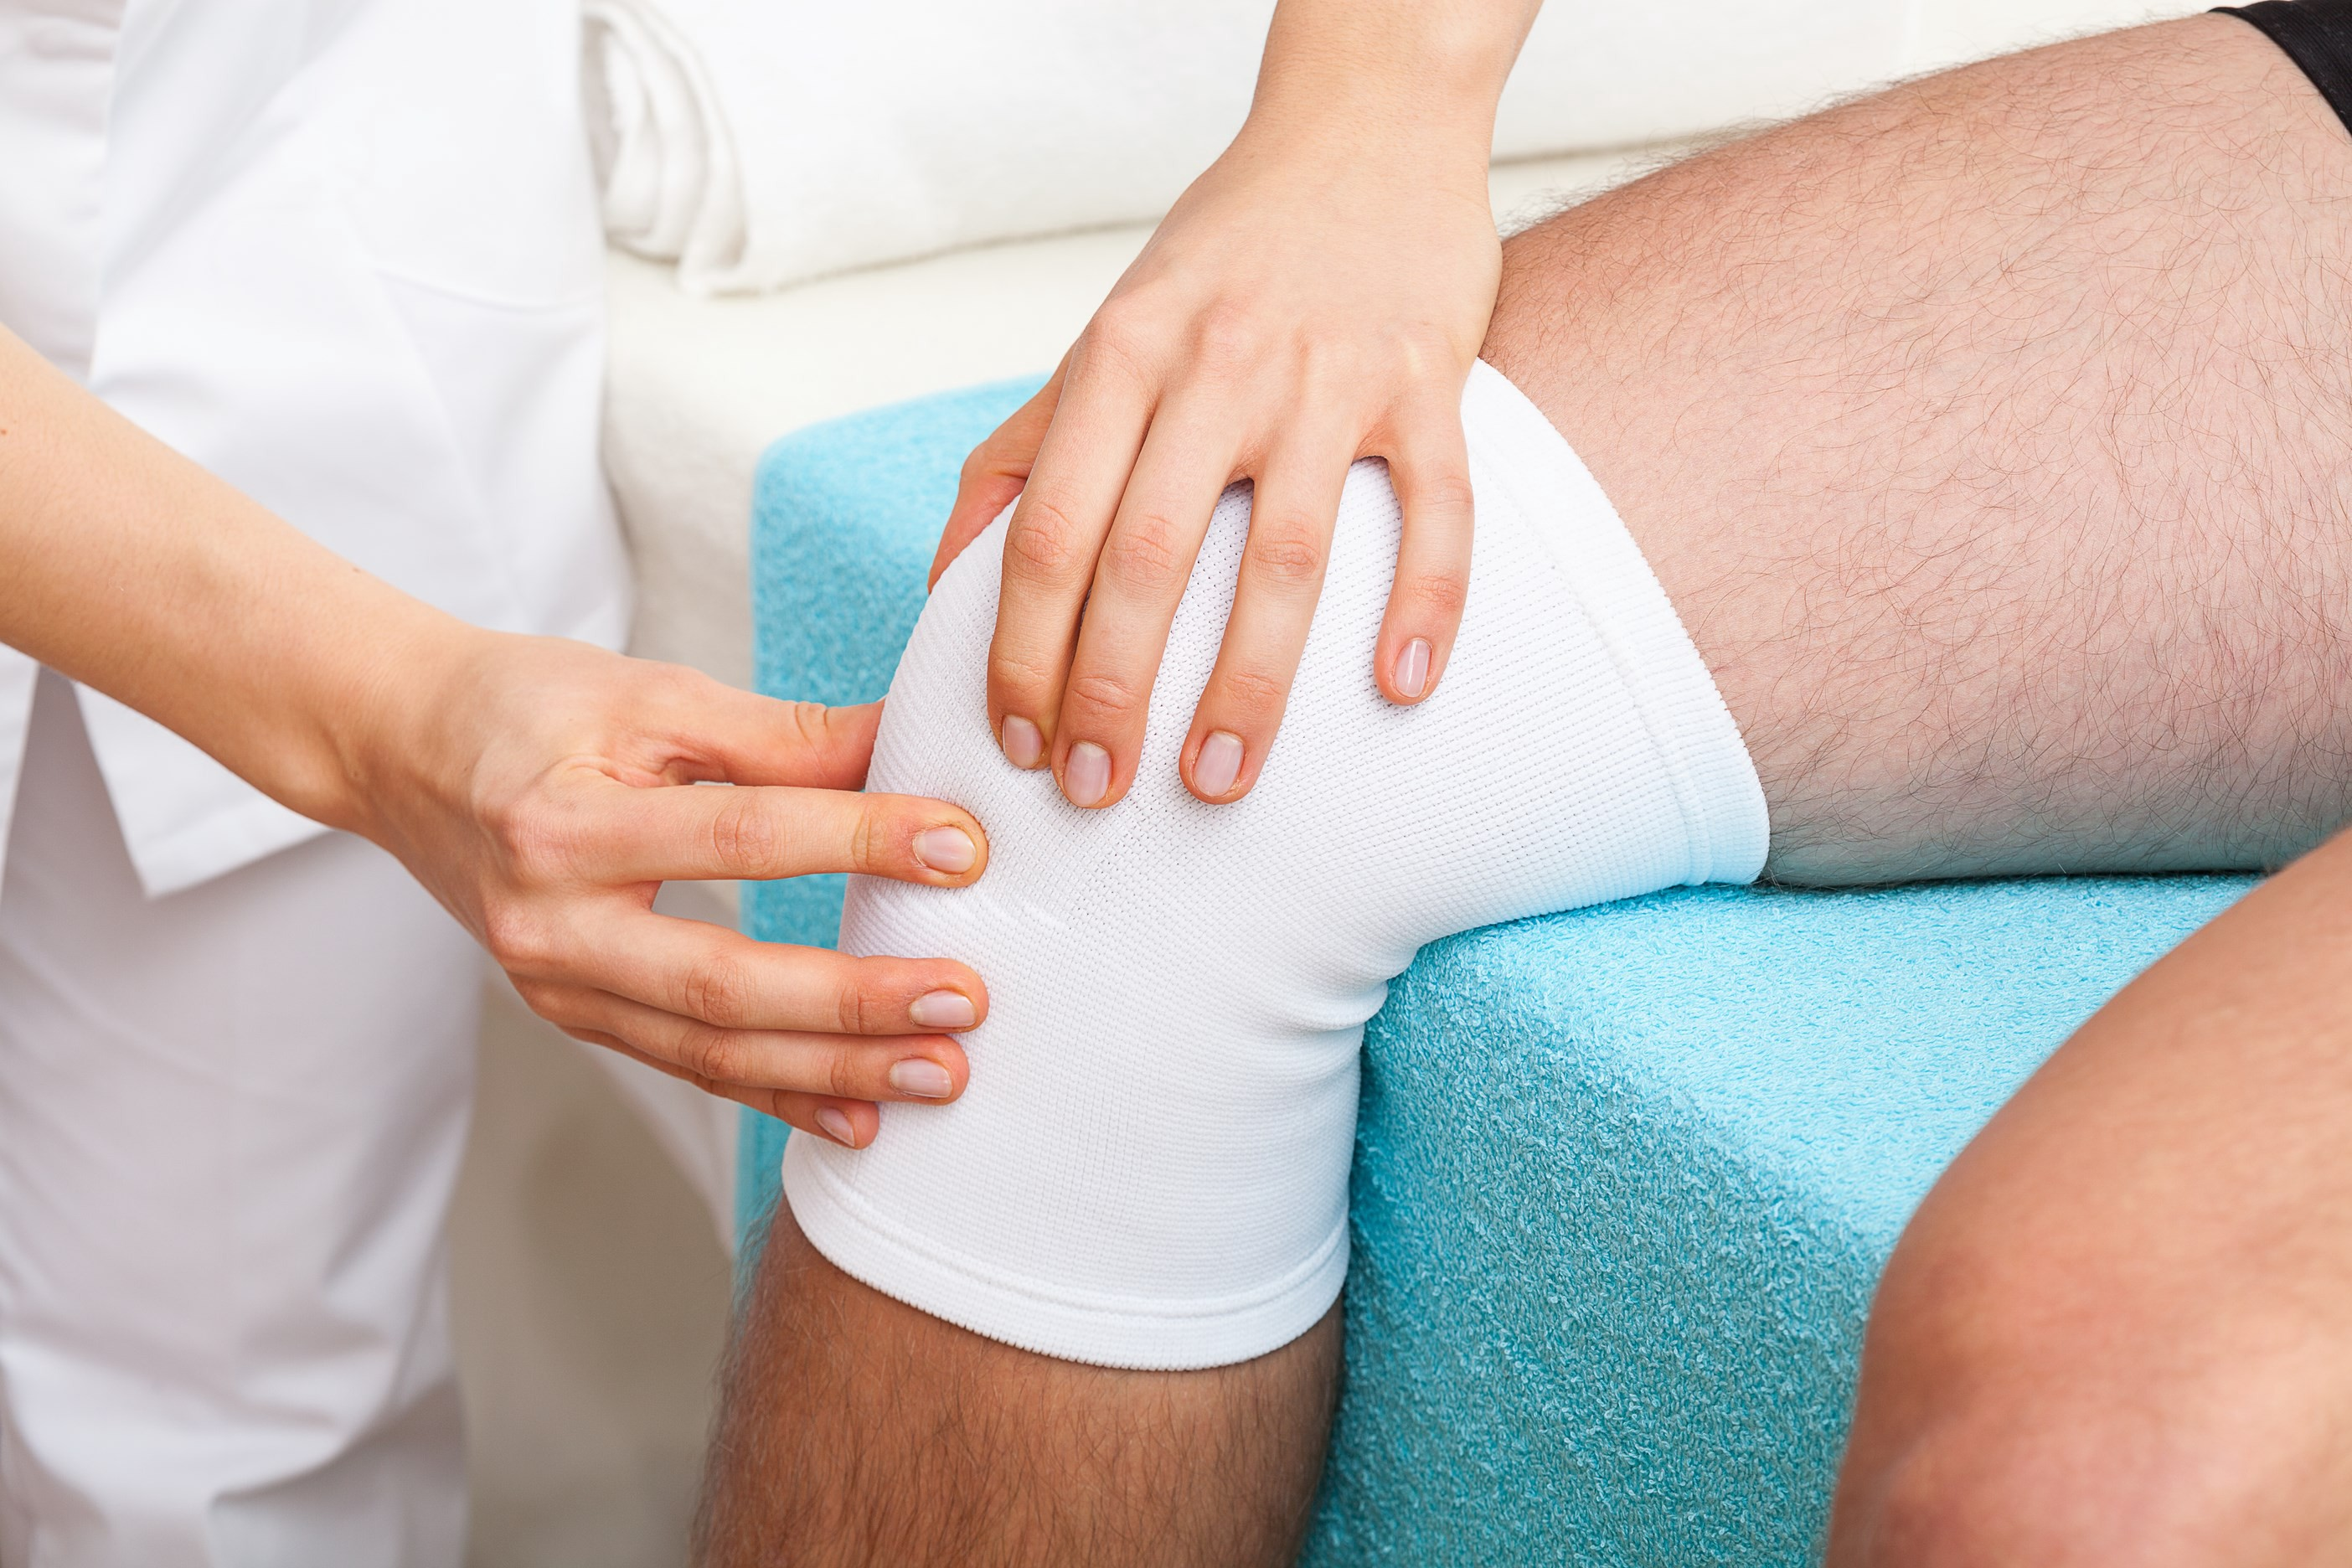 Orthopedic Surgeon Can Assist You Through The Pain